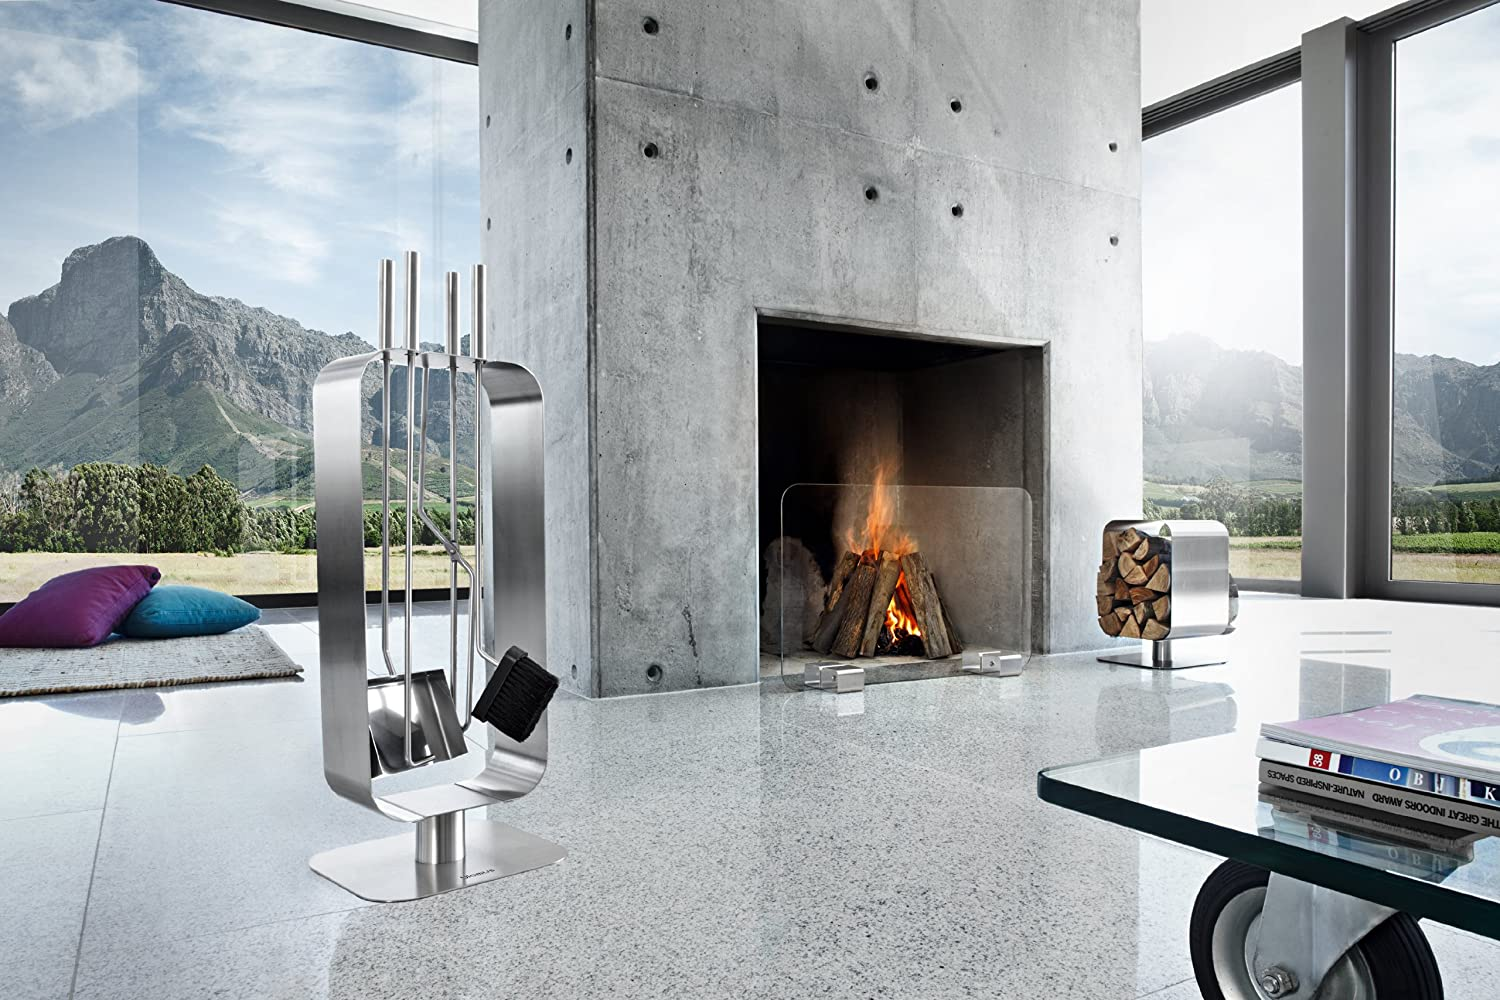 amazoncom blomus glass fireplace screen home  kitchen -